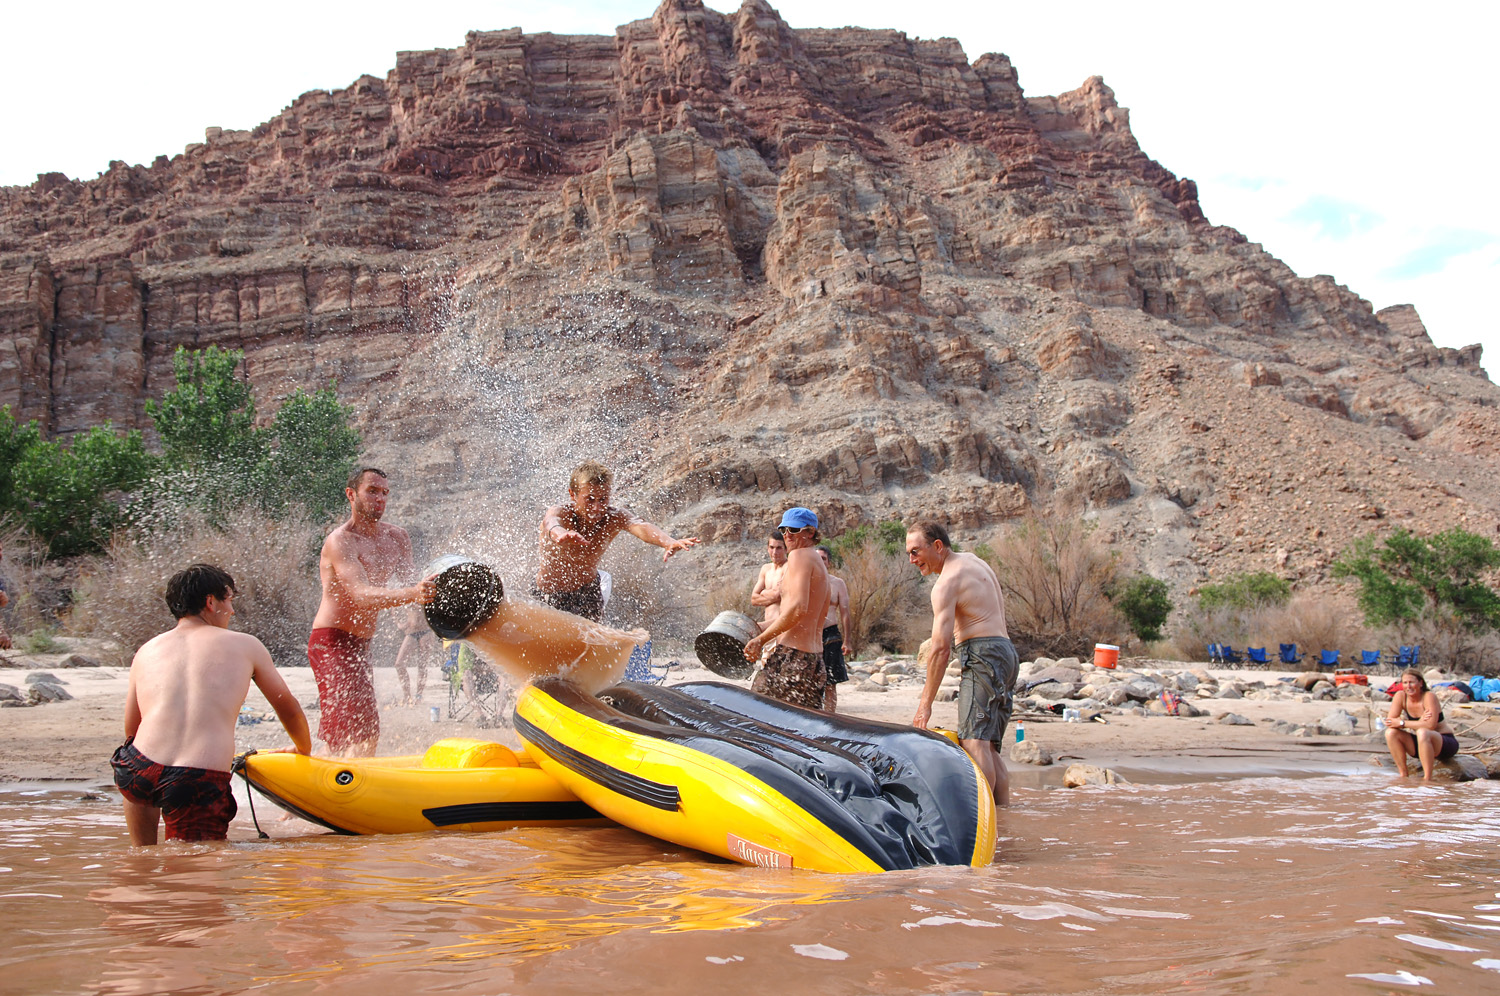 Play time on the boat slide on the Green River in Desolation Canyon.